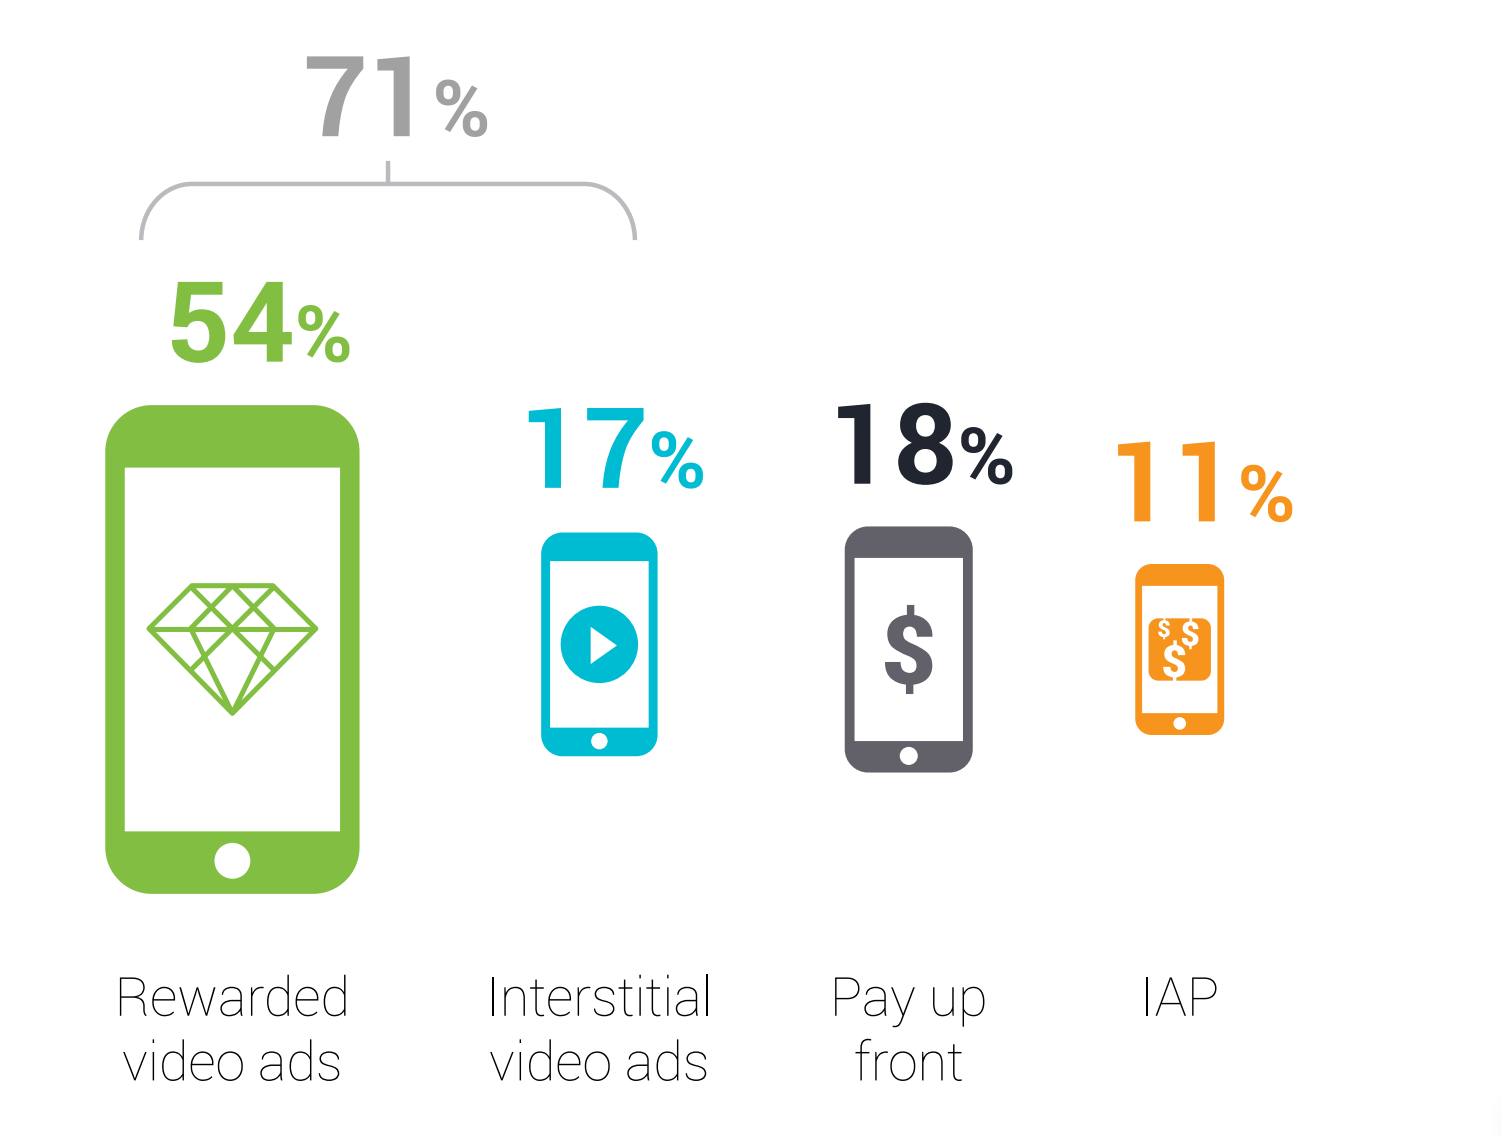 IAP the least popular form of monetisation among players